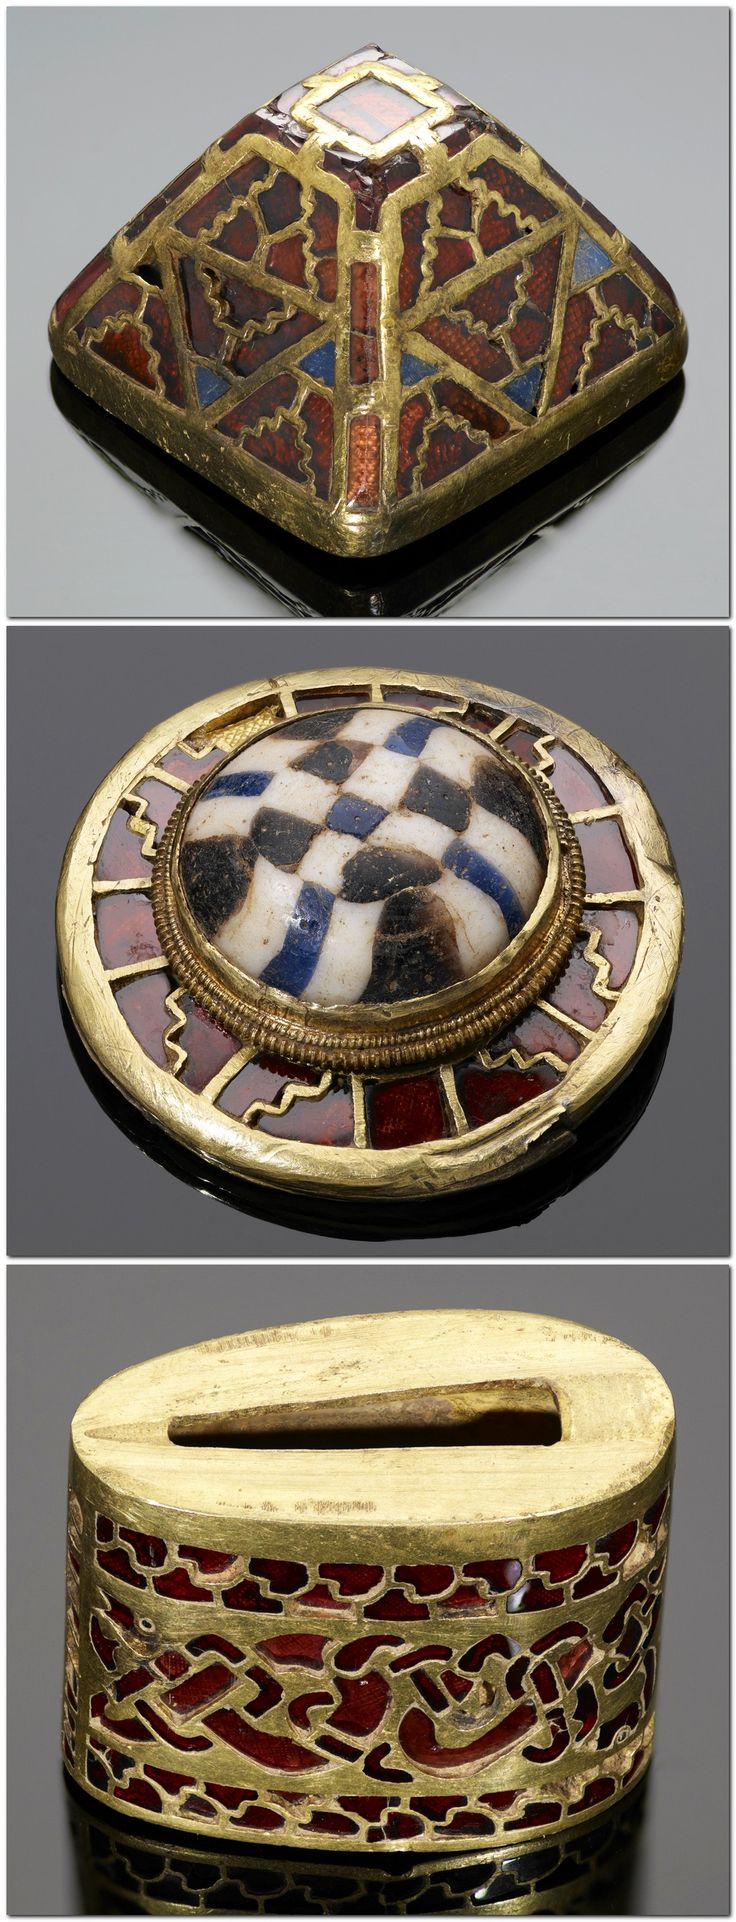 Anglo-Saxon (7th-8th century) garnet, millefiori glass and gold cloisonne sword fittings from the Staffordshire Hoard, found in a field in 2009.